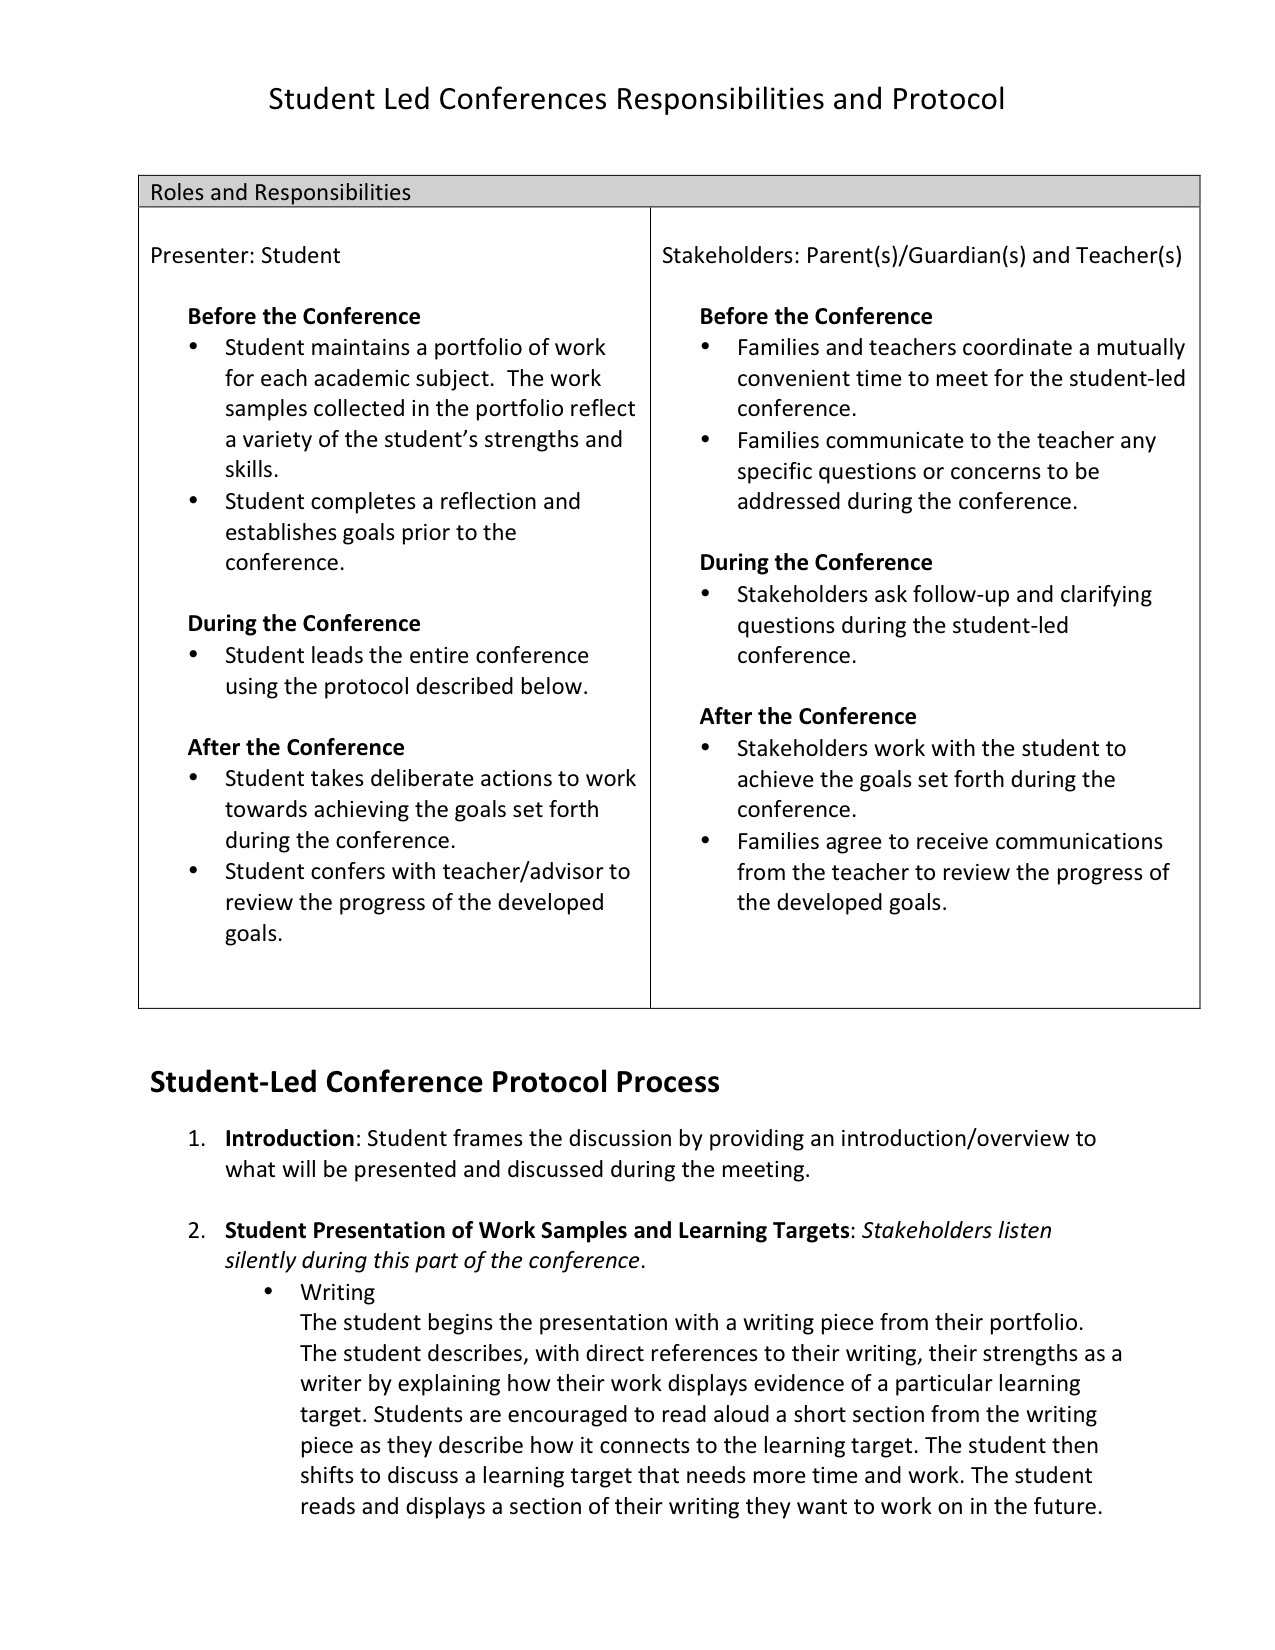 Student-Led Conferences | Scholastic